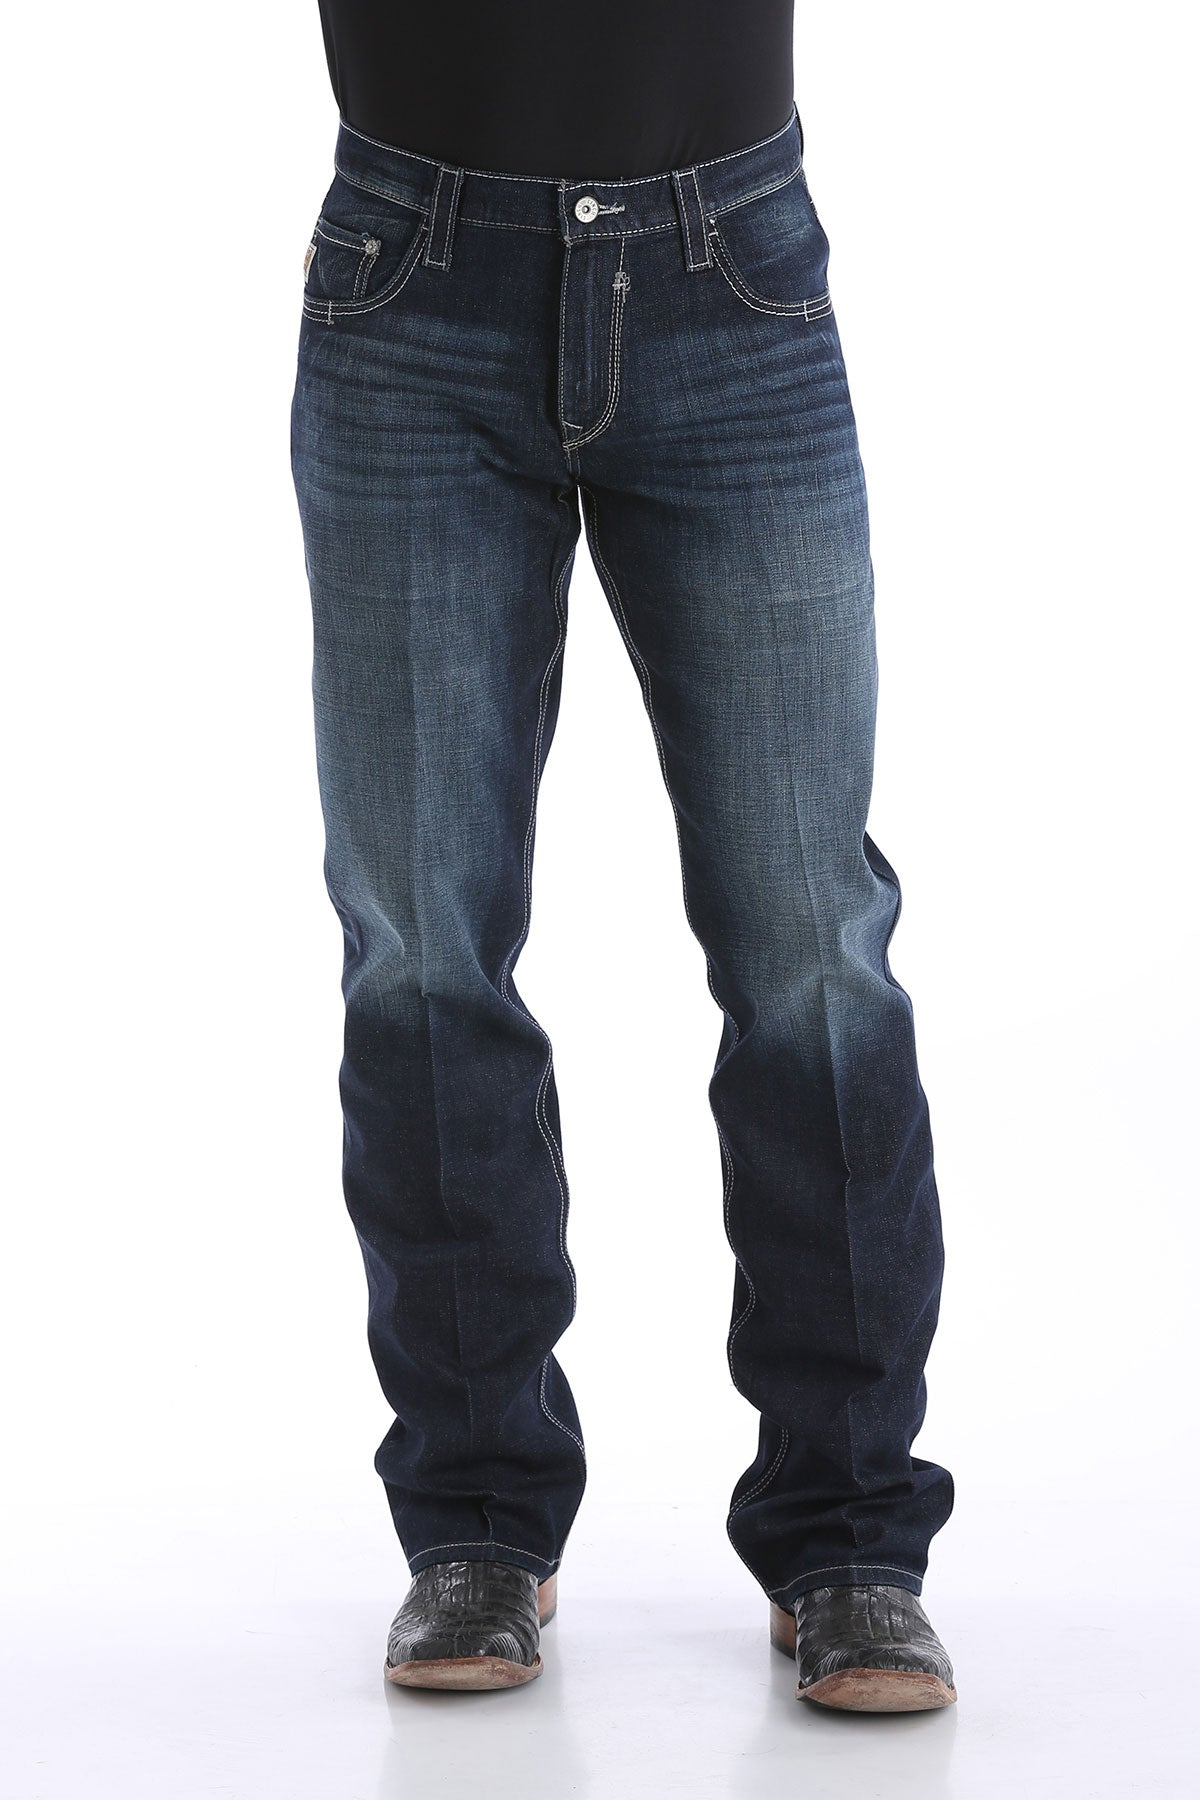 'Cinch' MB71934005 - Carter 2.4 Performance Denim - Dark Rinse